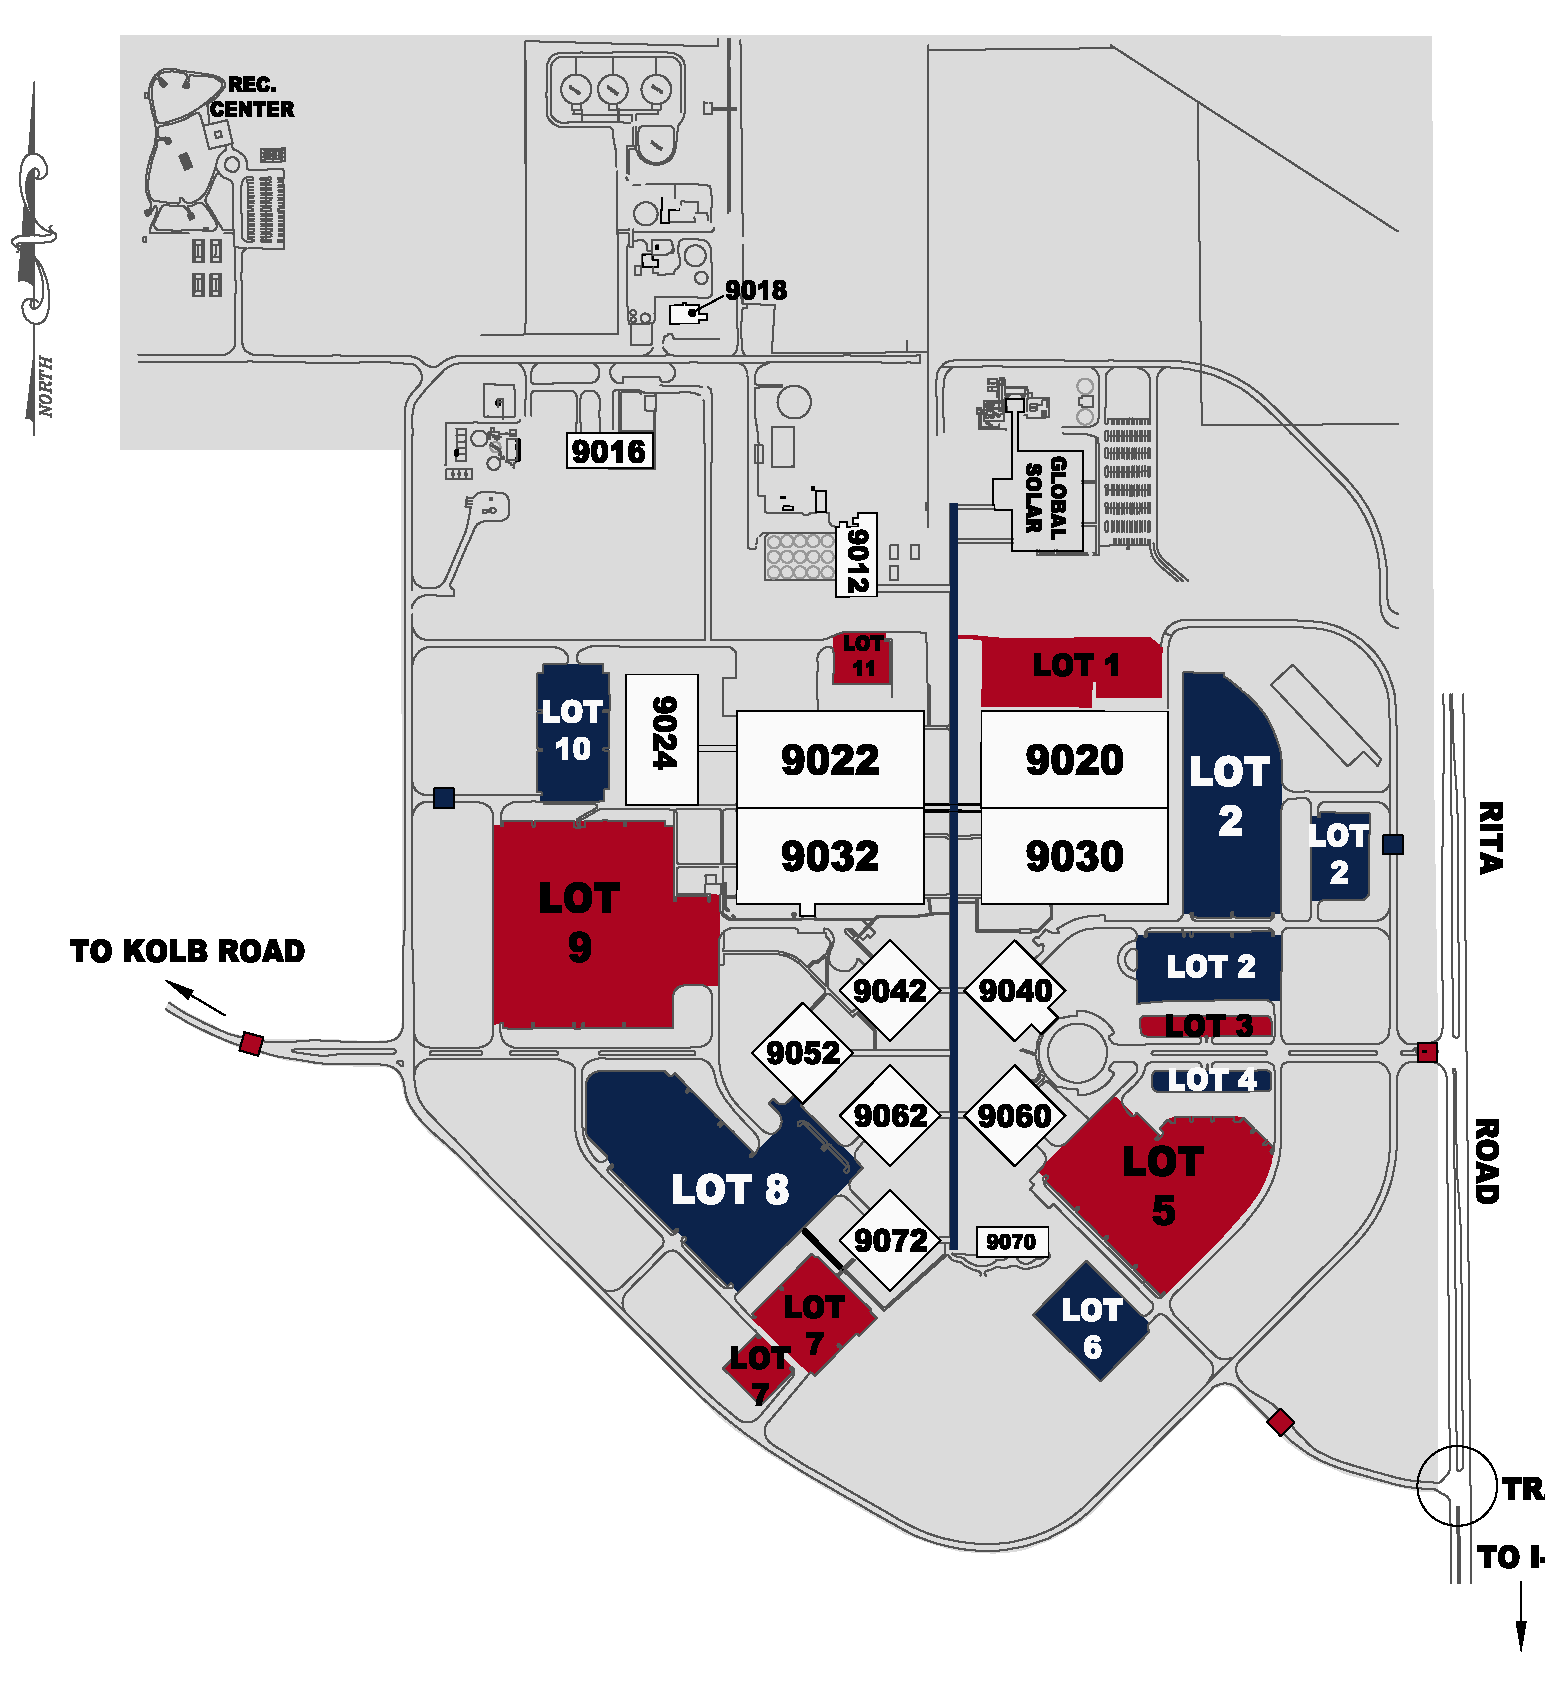 Tech Park Parking lot map thumbnail.png